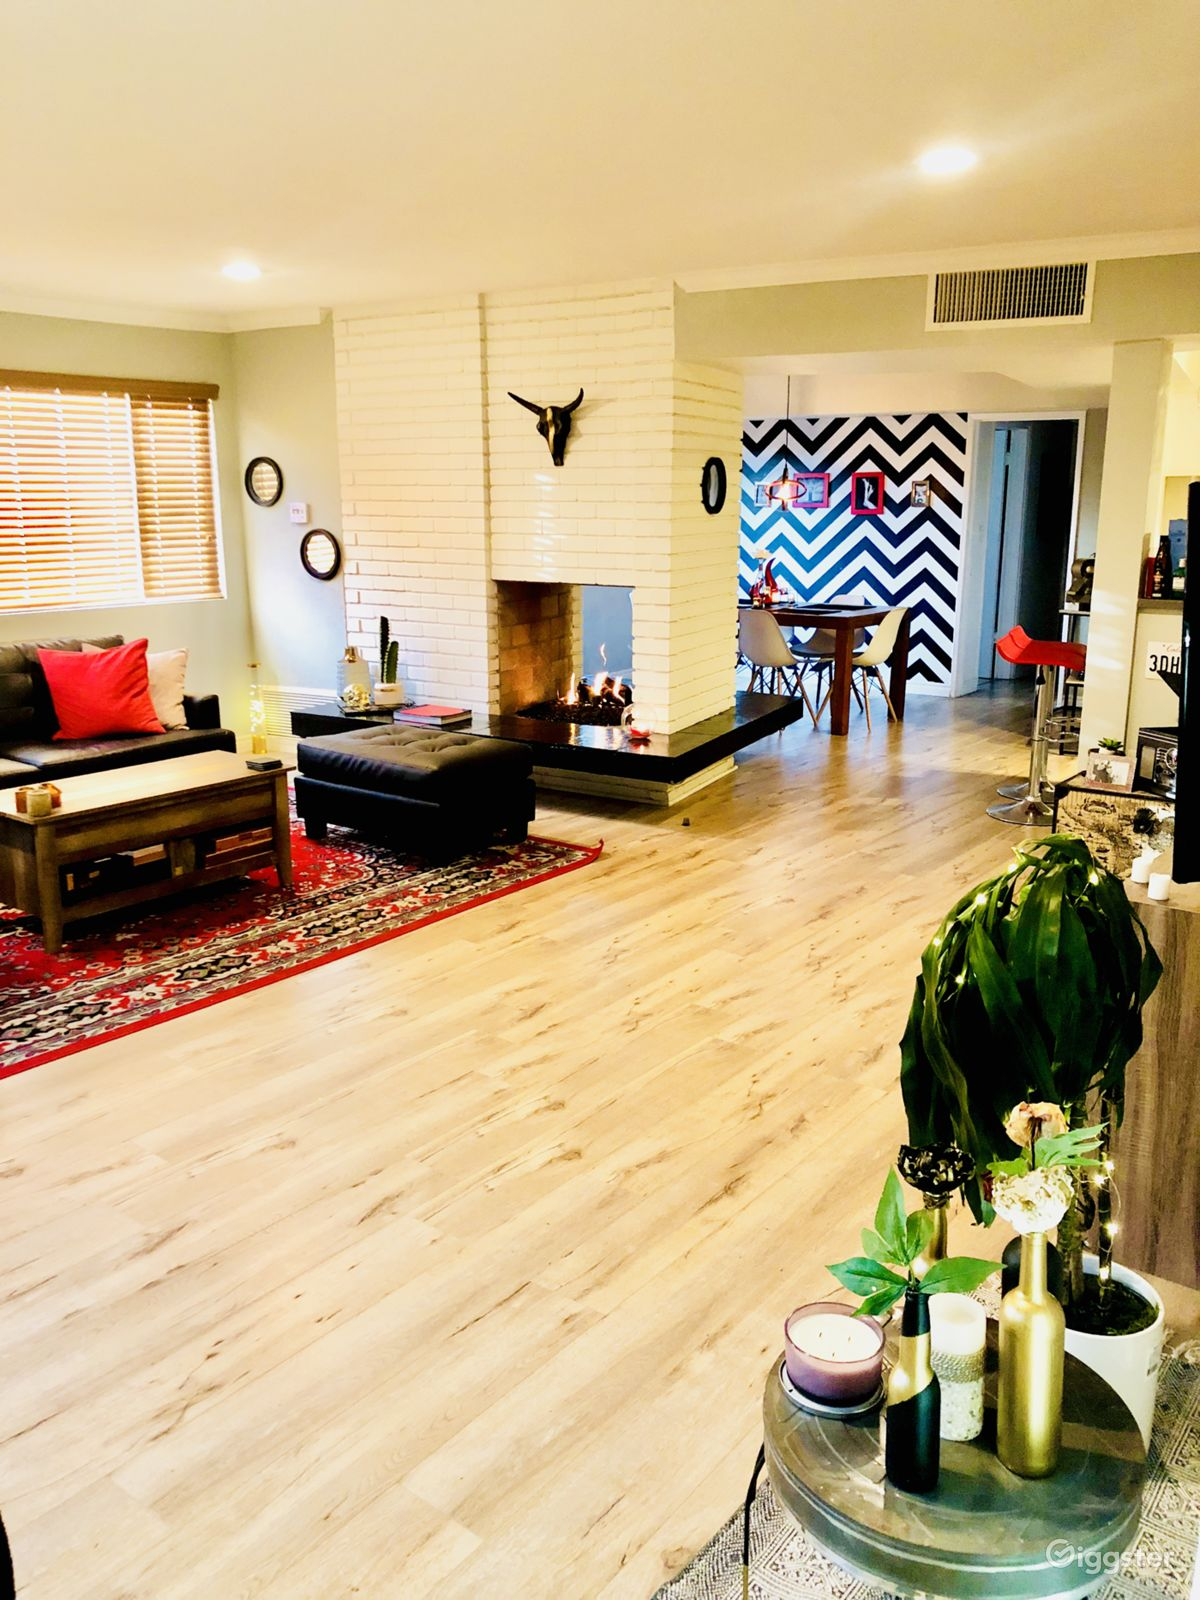 Rent the apartment loft or penthouseresidential modern large bright apt in bh